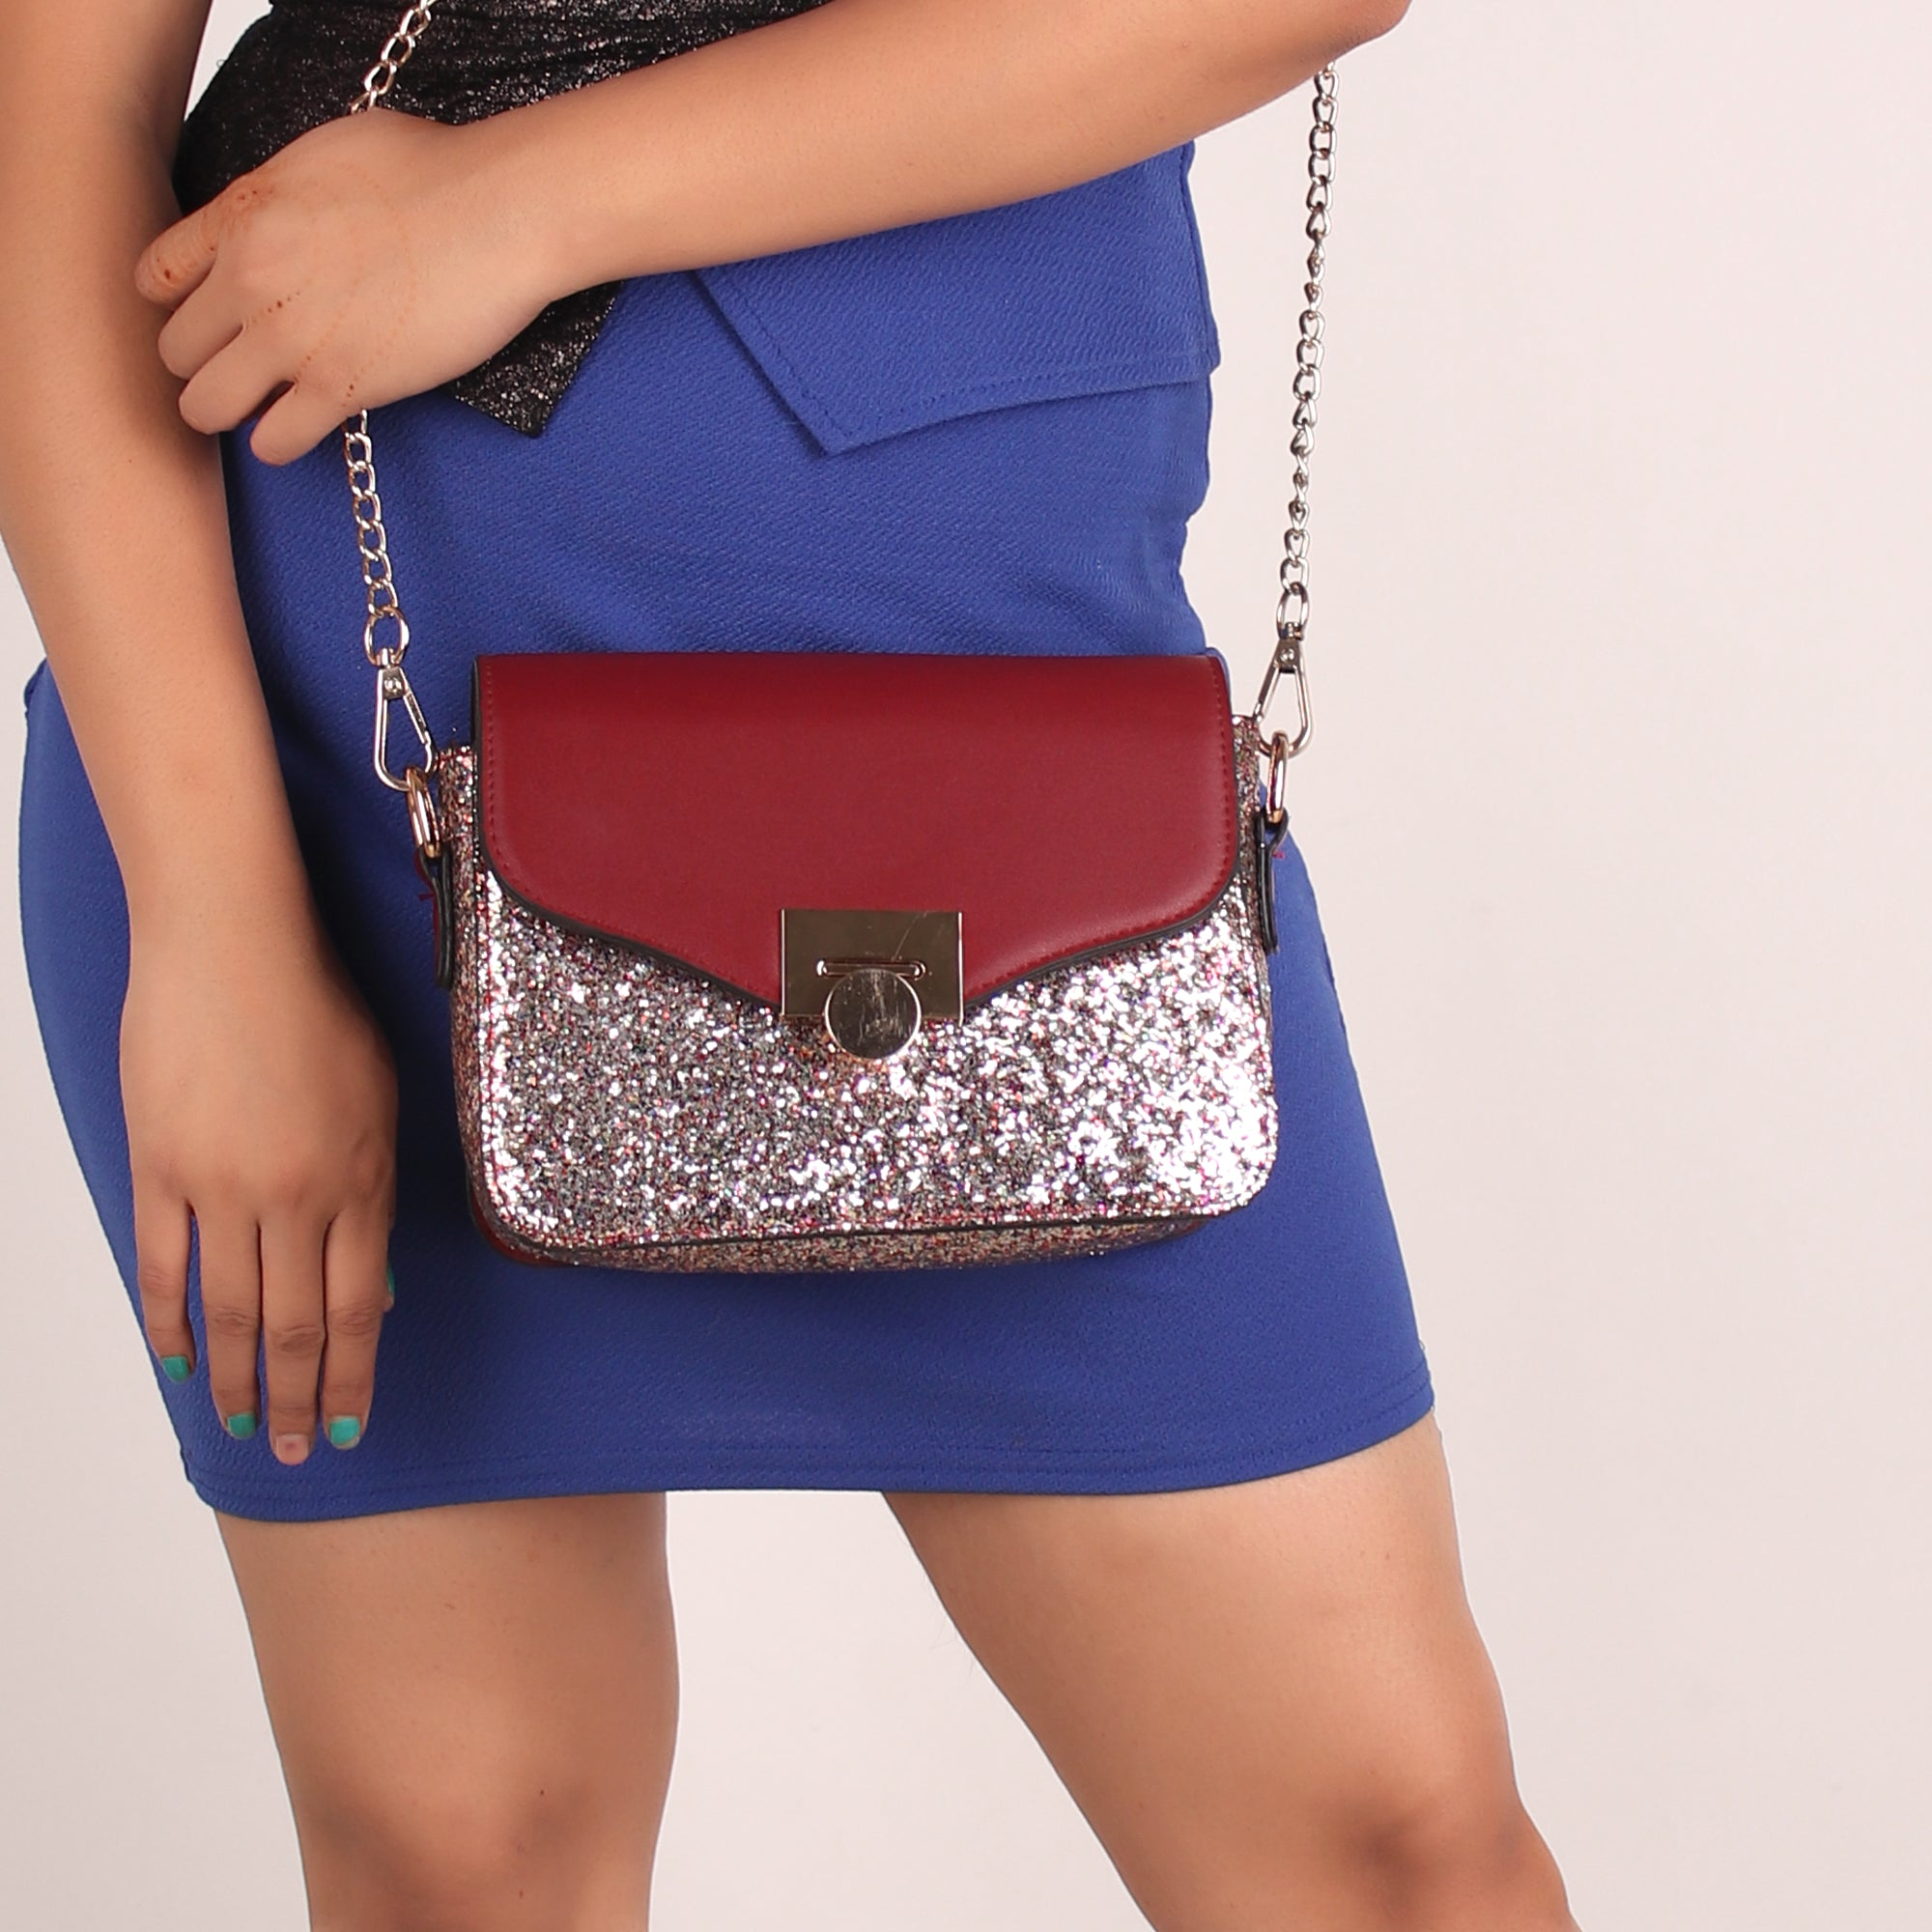 Sling Bag,The Lustrous Glossy Sling Bag - Cippele Multi Store